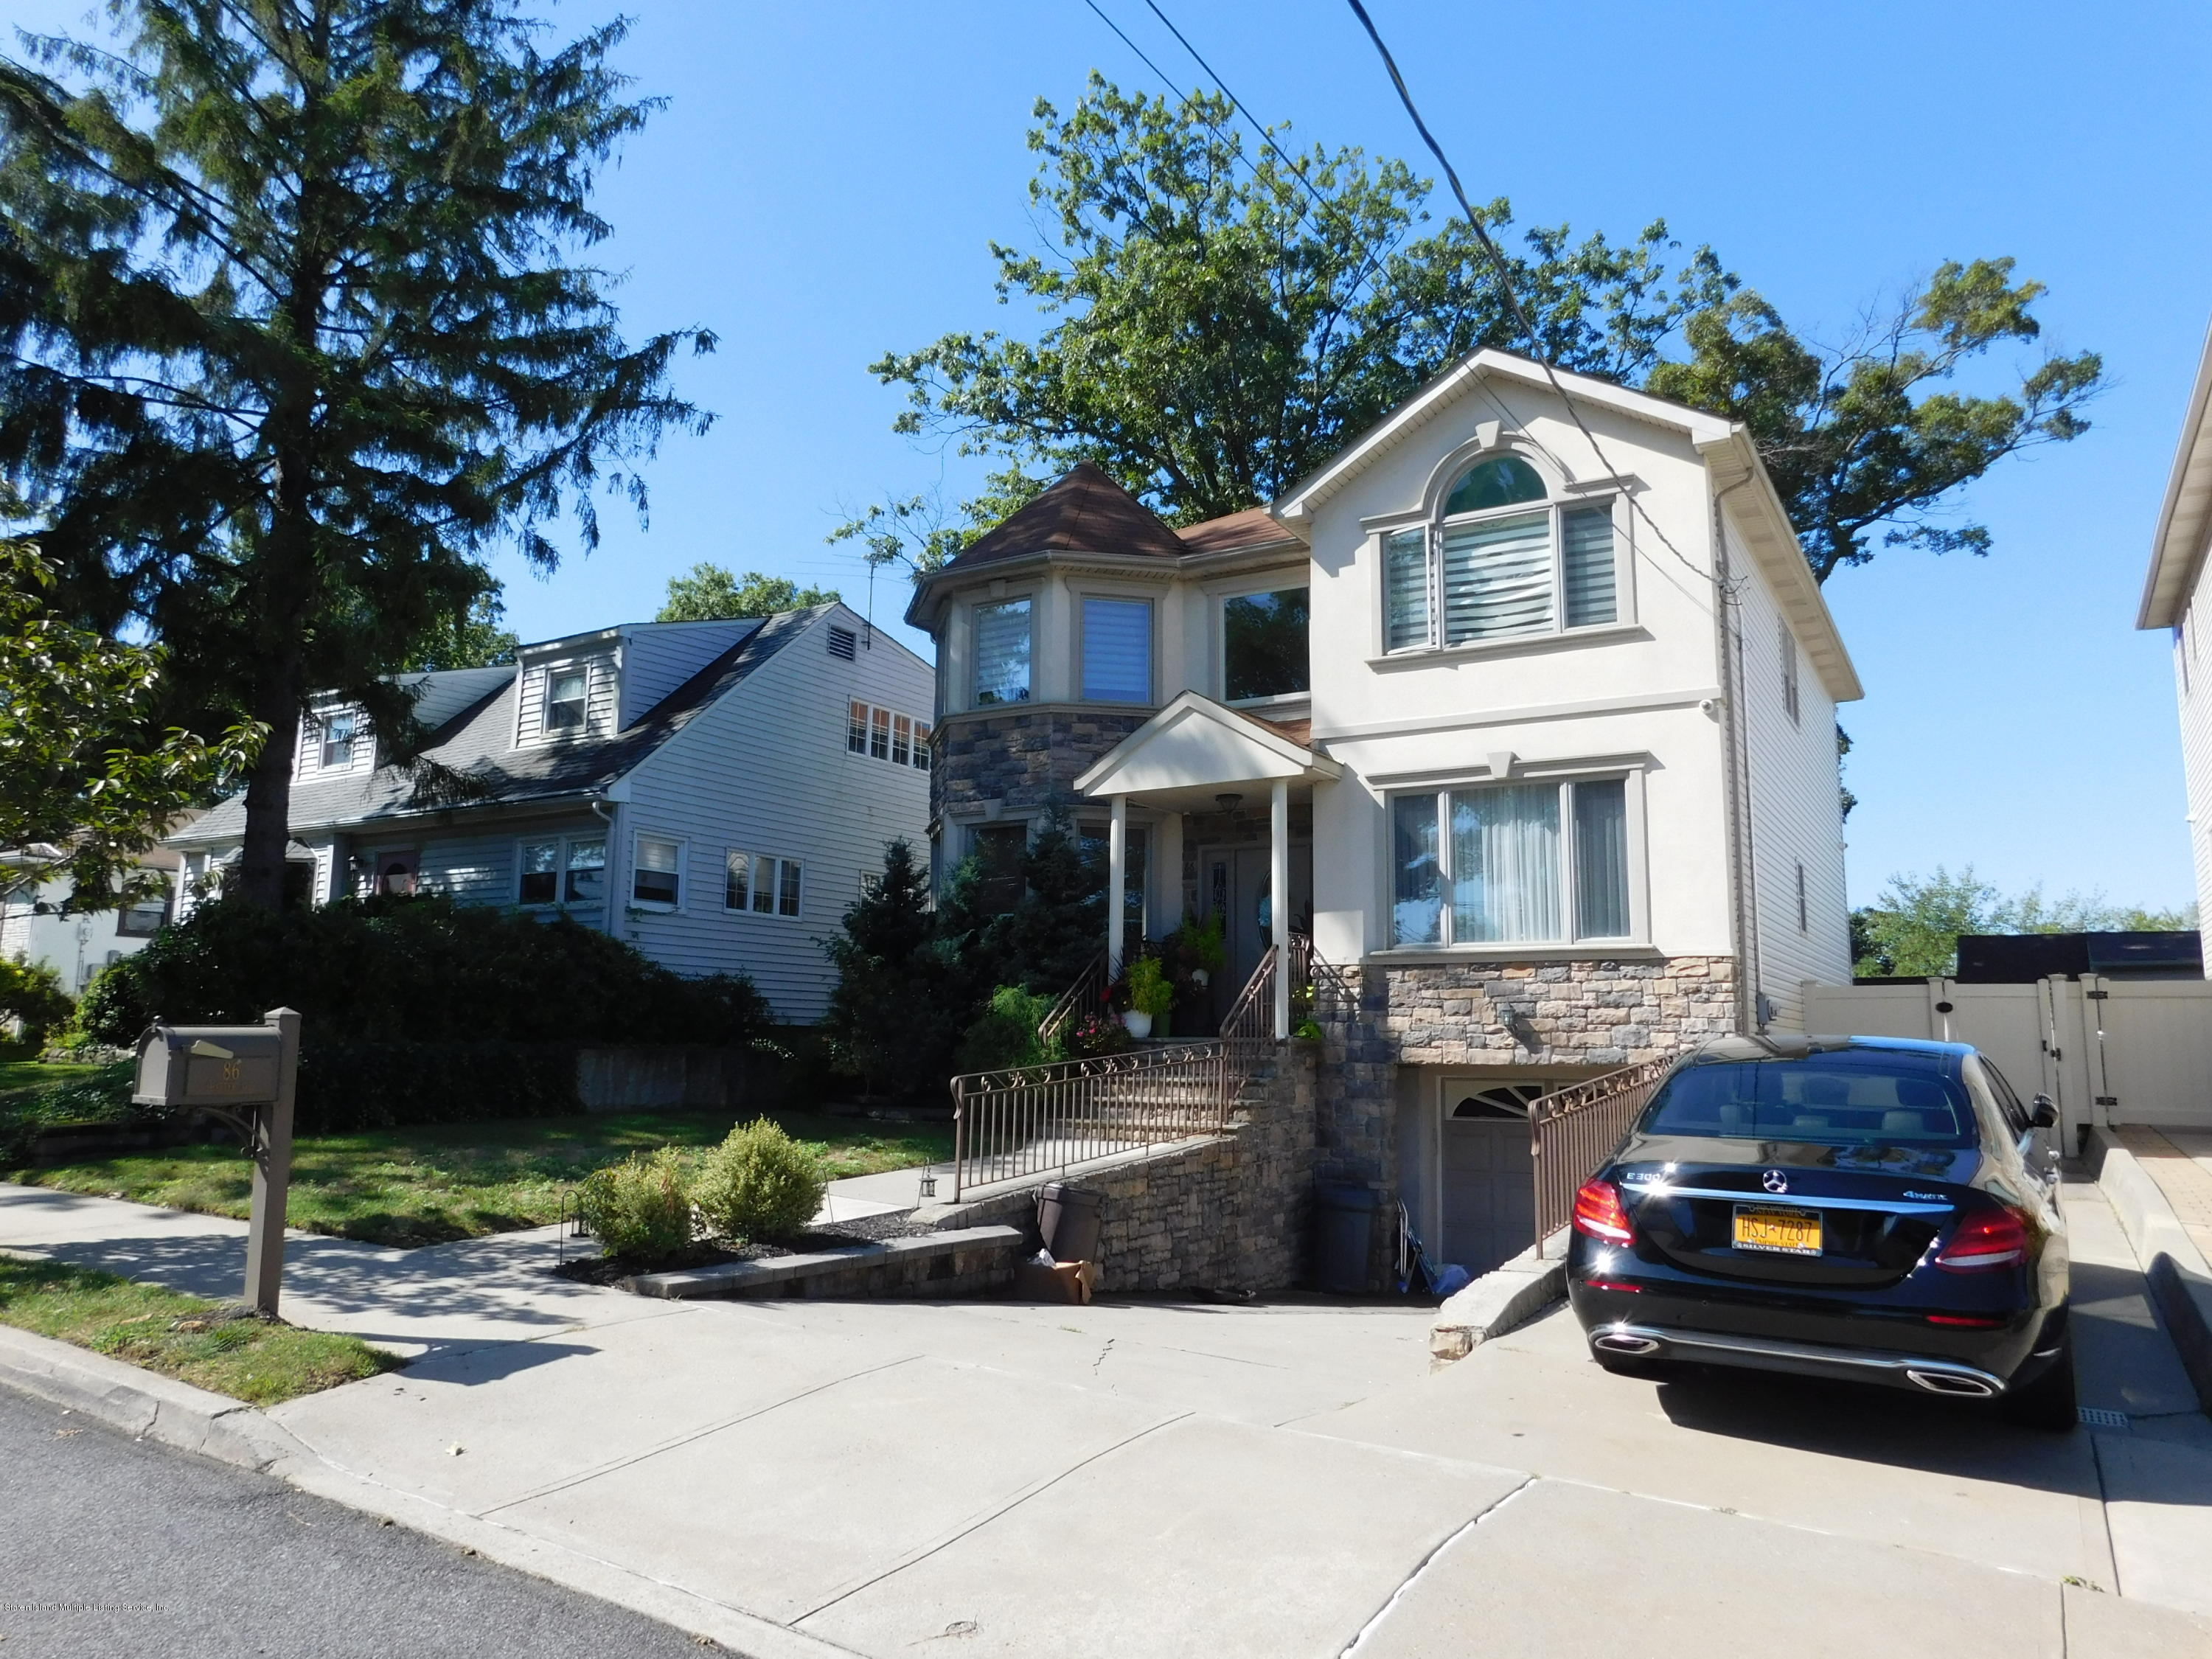 Single Family - Detached 86 Shafter Avenue  Staten Island, NY 10308, MLS-1132055-3